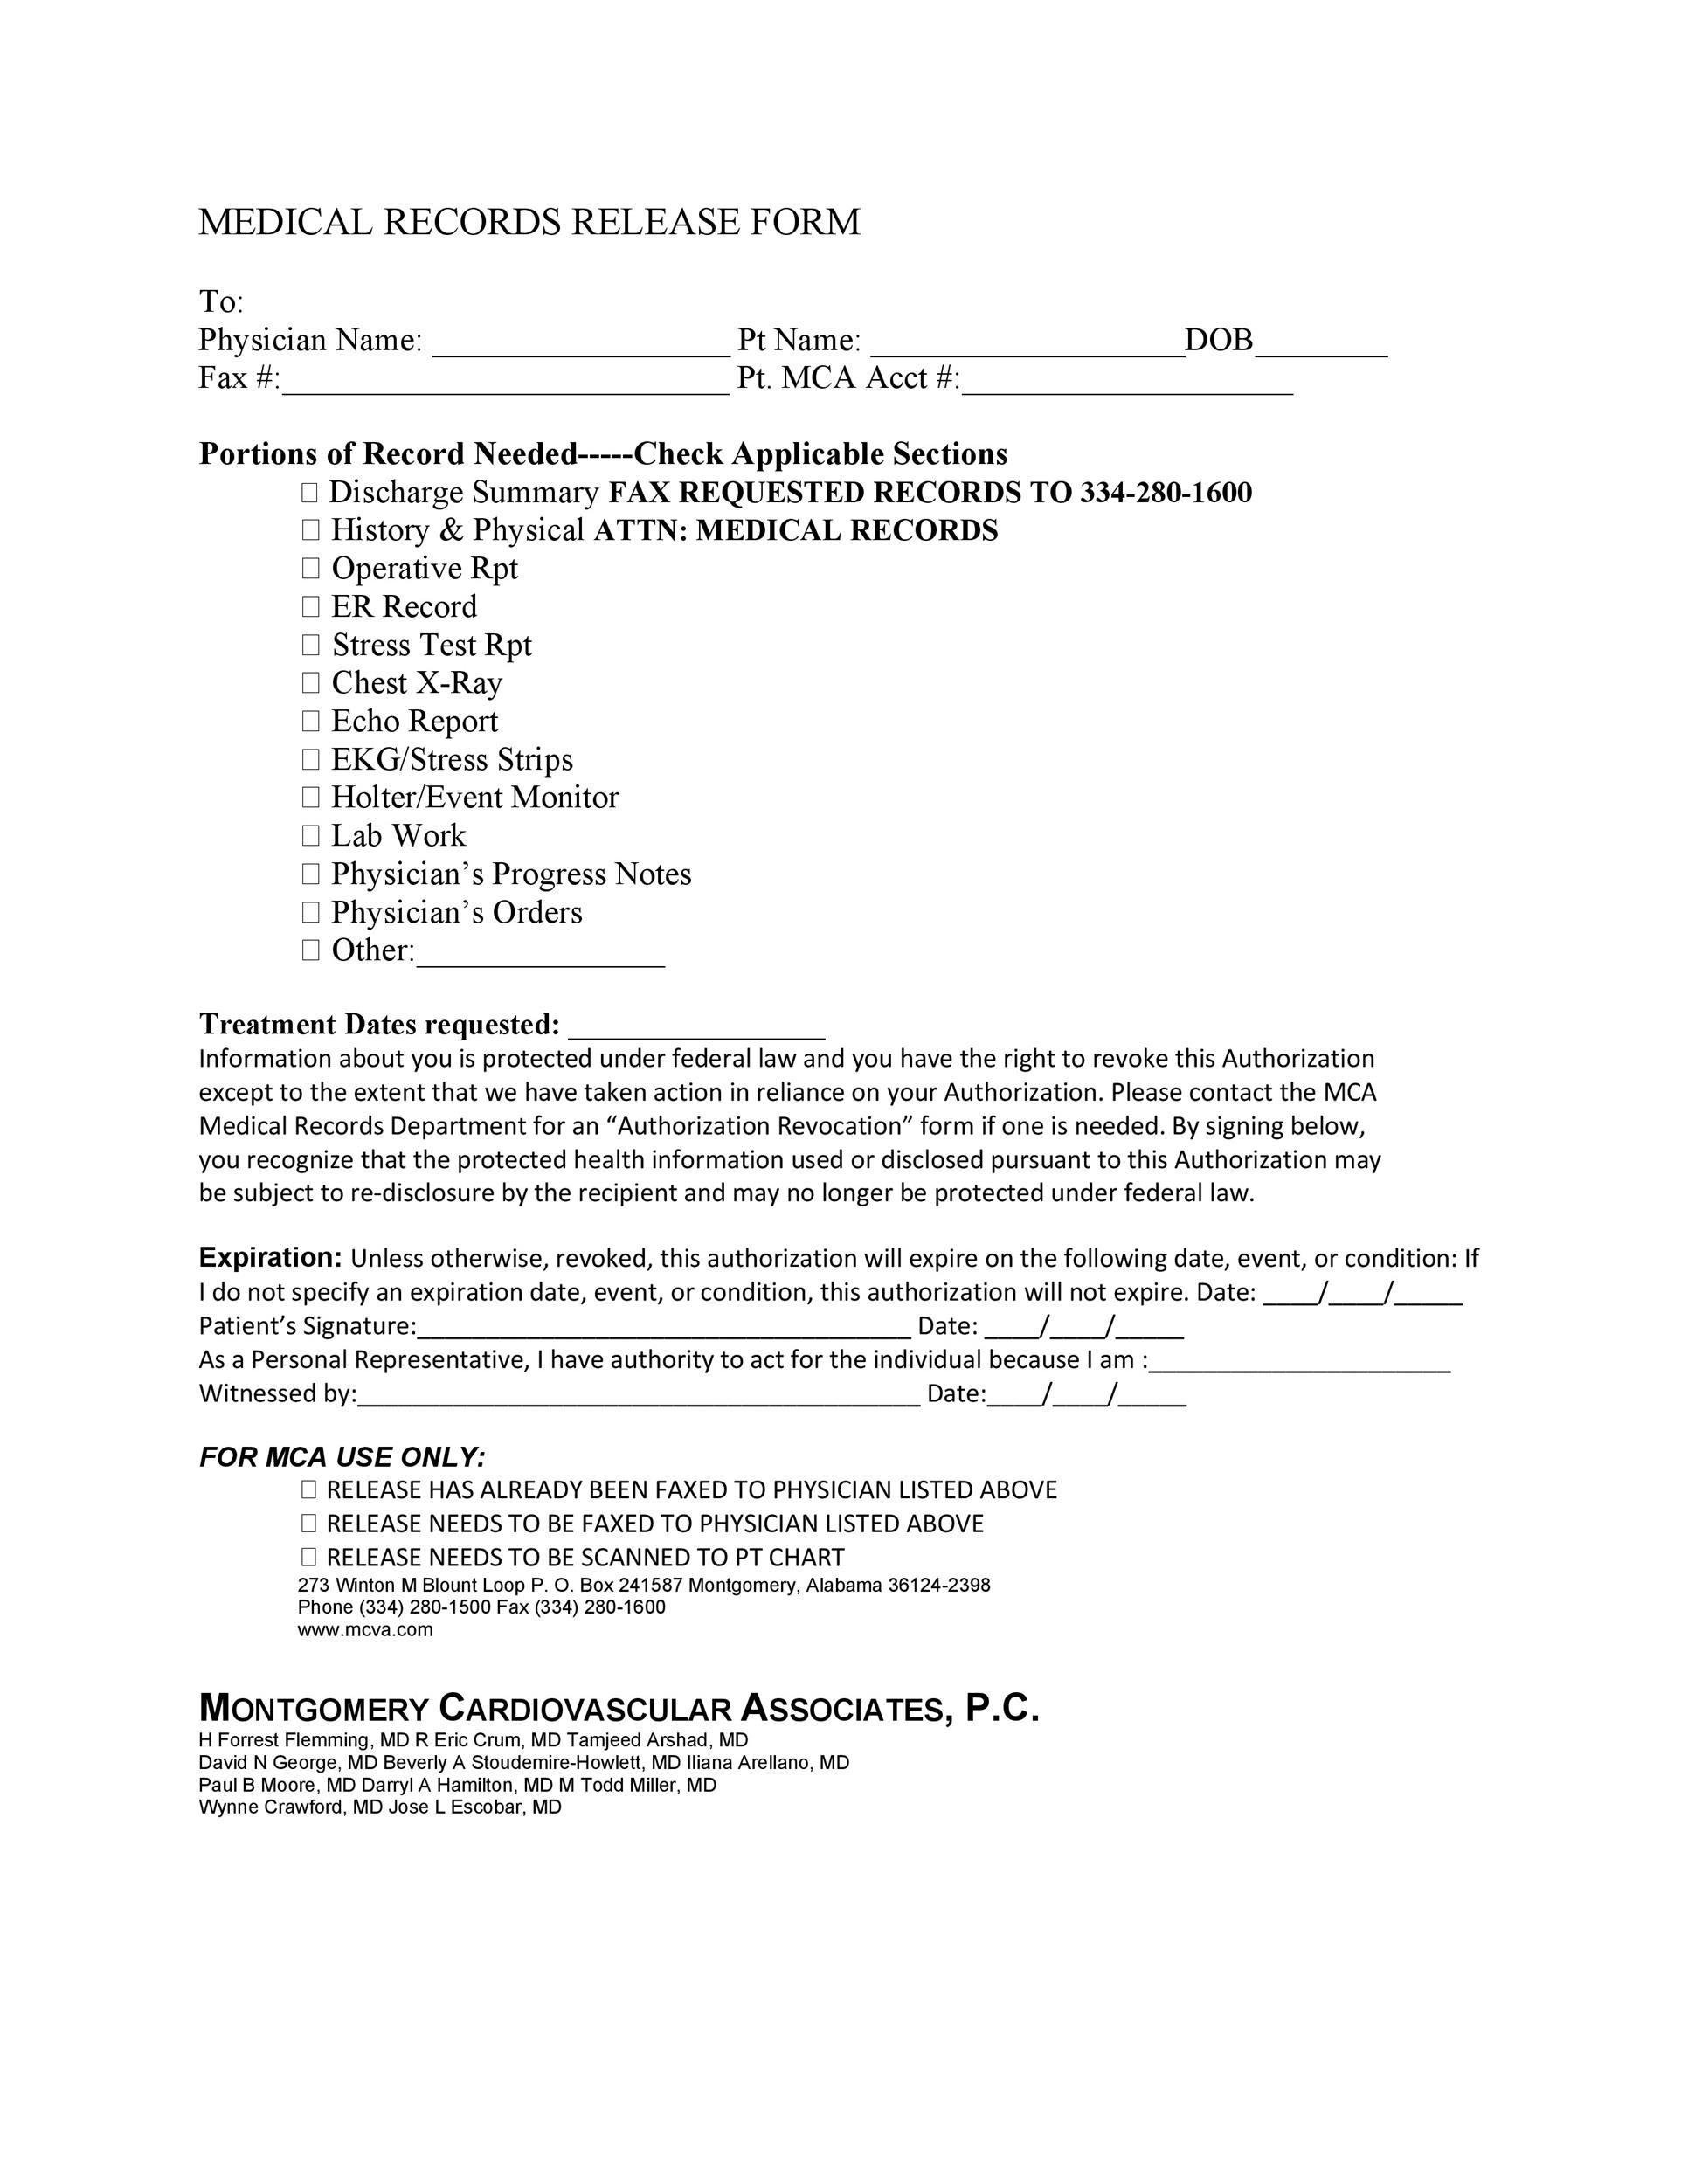 Printable Release Form. Dental Medical Records Release Medical